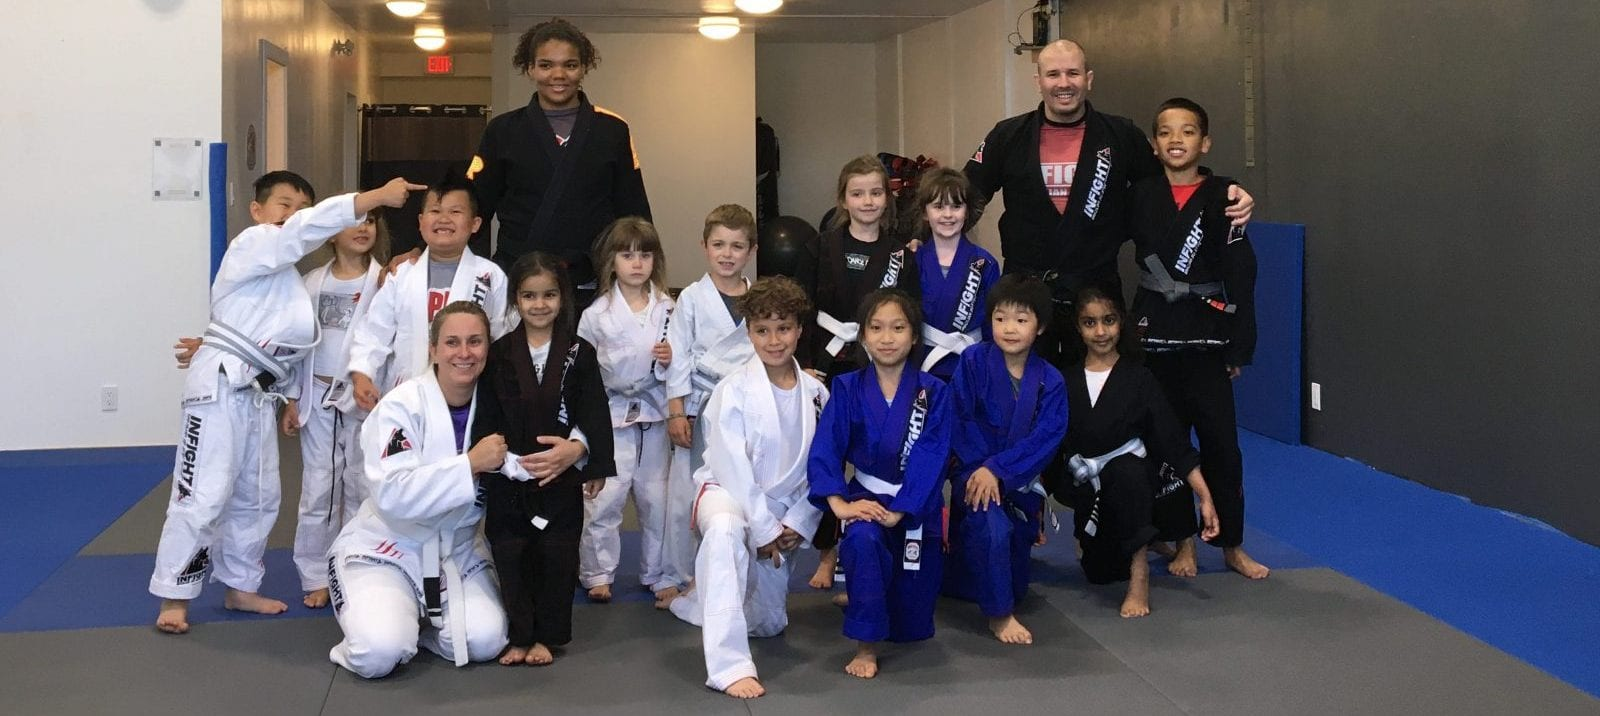 Kids BJJ - BVJJ Belt Exam